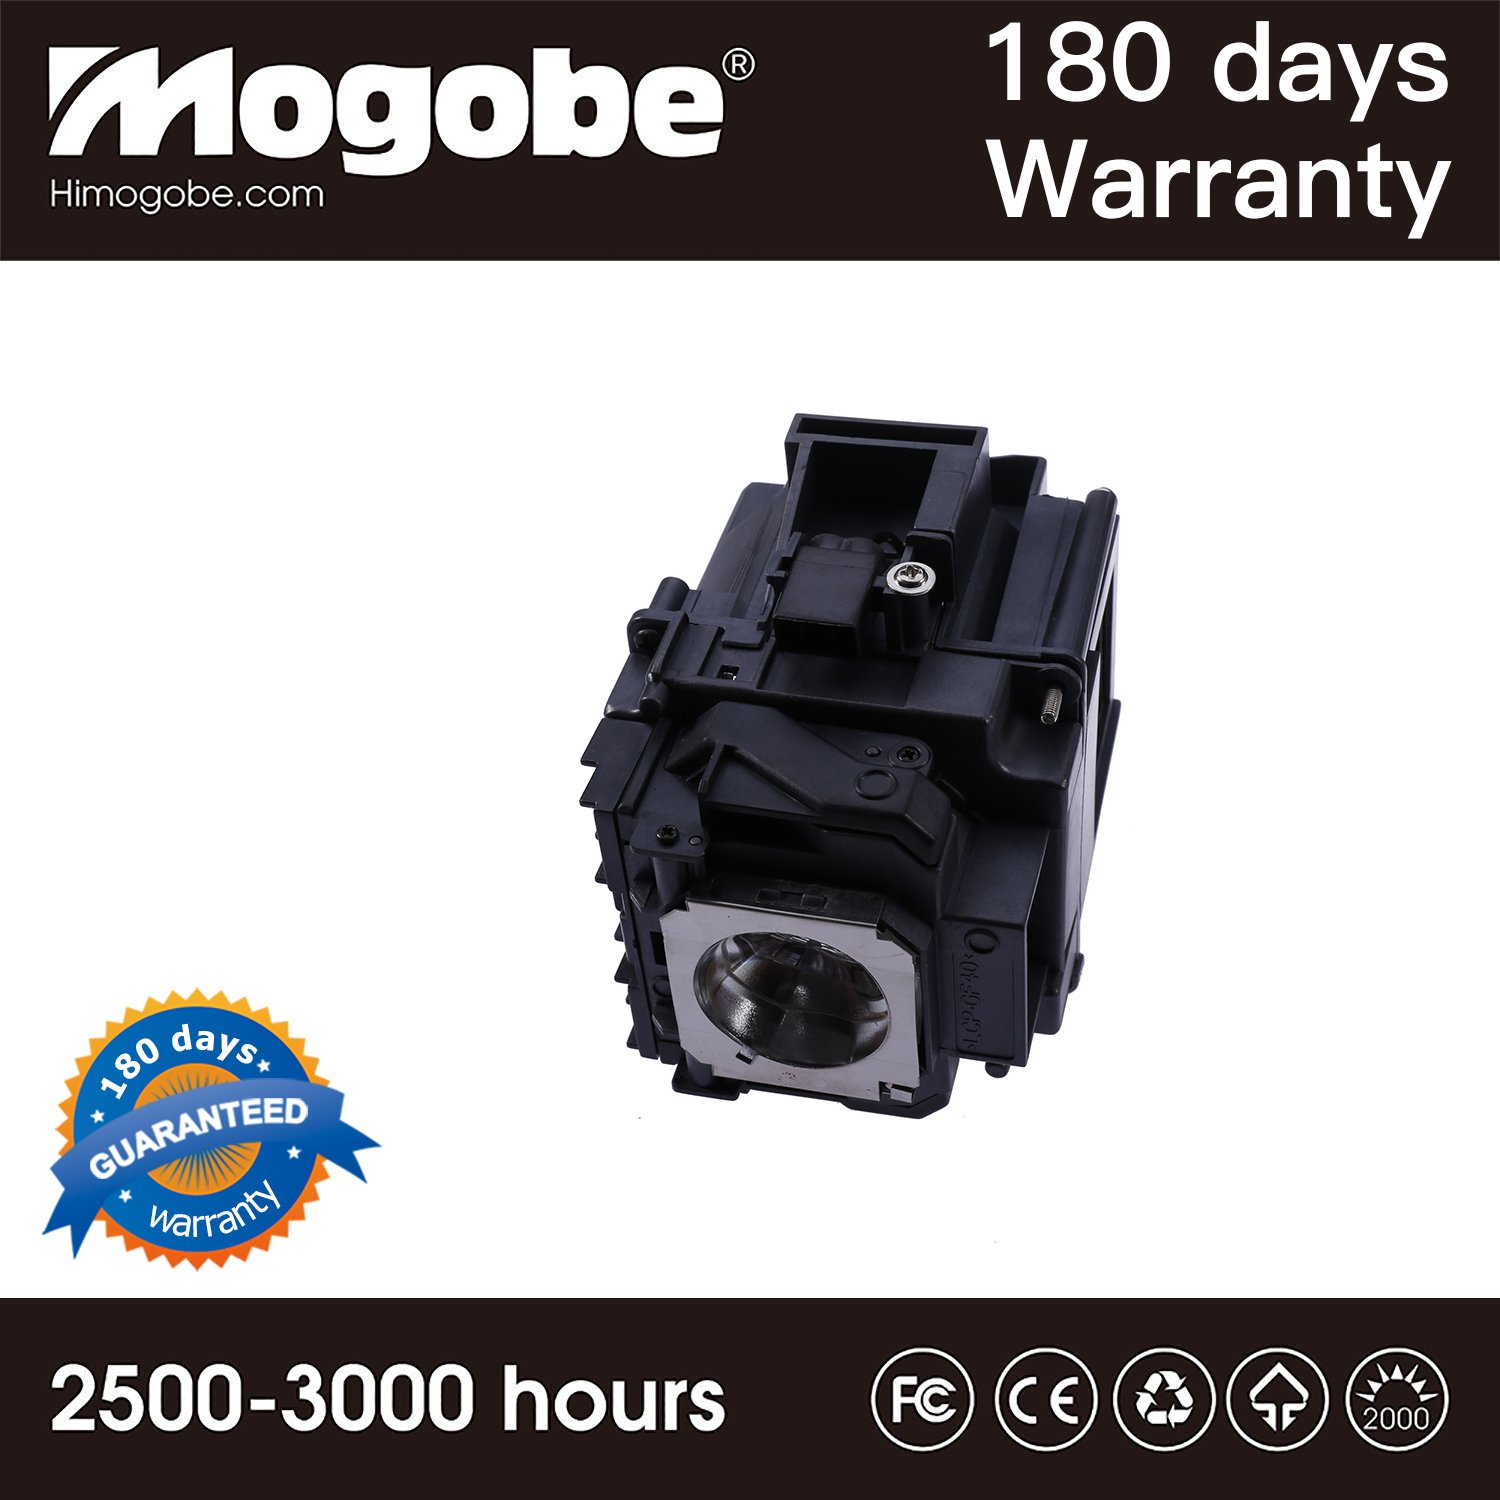 Watoman ELPLP76 Original Replacement Projector Lamp with Housing for Epson PowerLite Pro G6050W G6050WNL G6070W G6070WNL G6150 G6150NL G6170 G6170NL G6270W G6270WNL G6450WU G6550WU G6750WU G6800 G6900